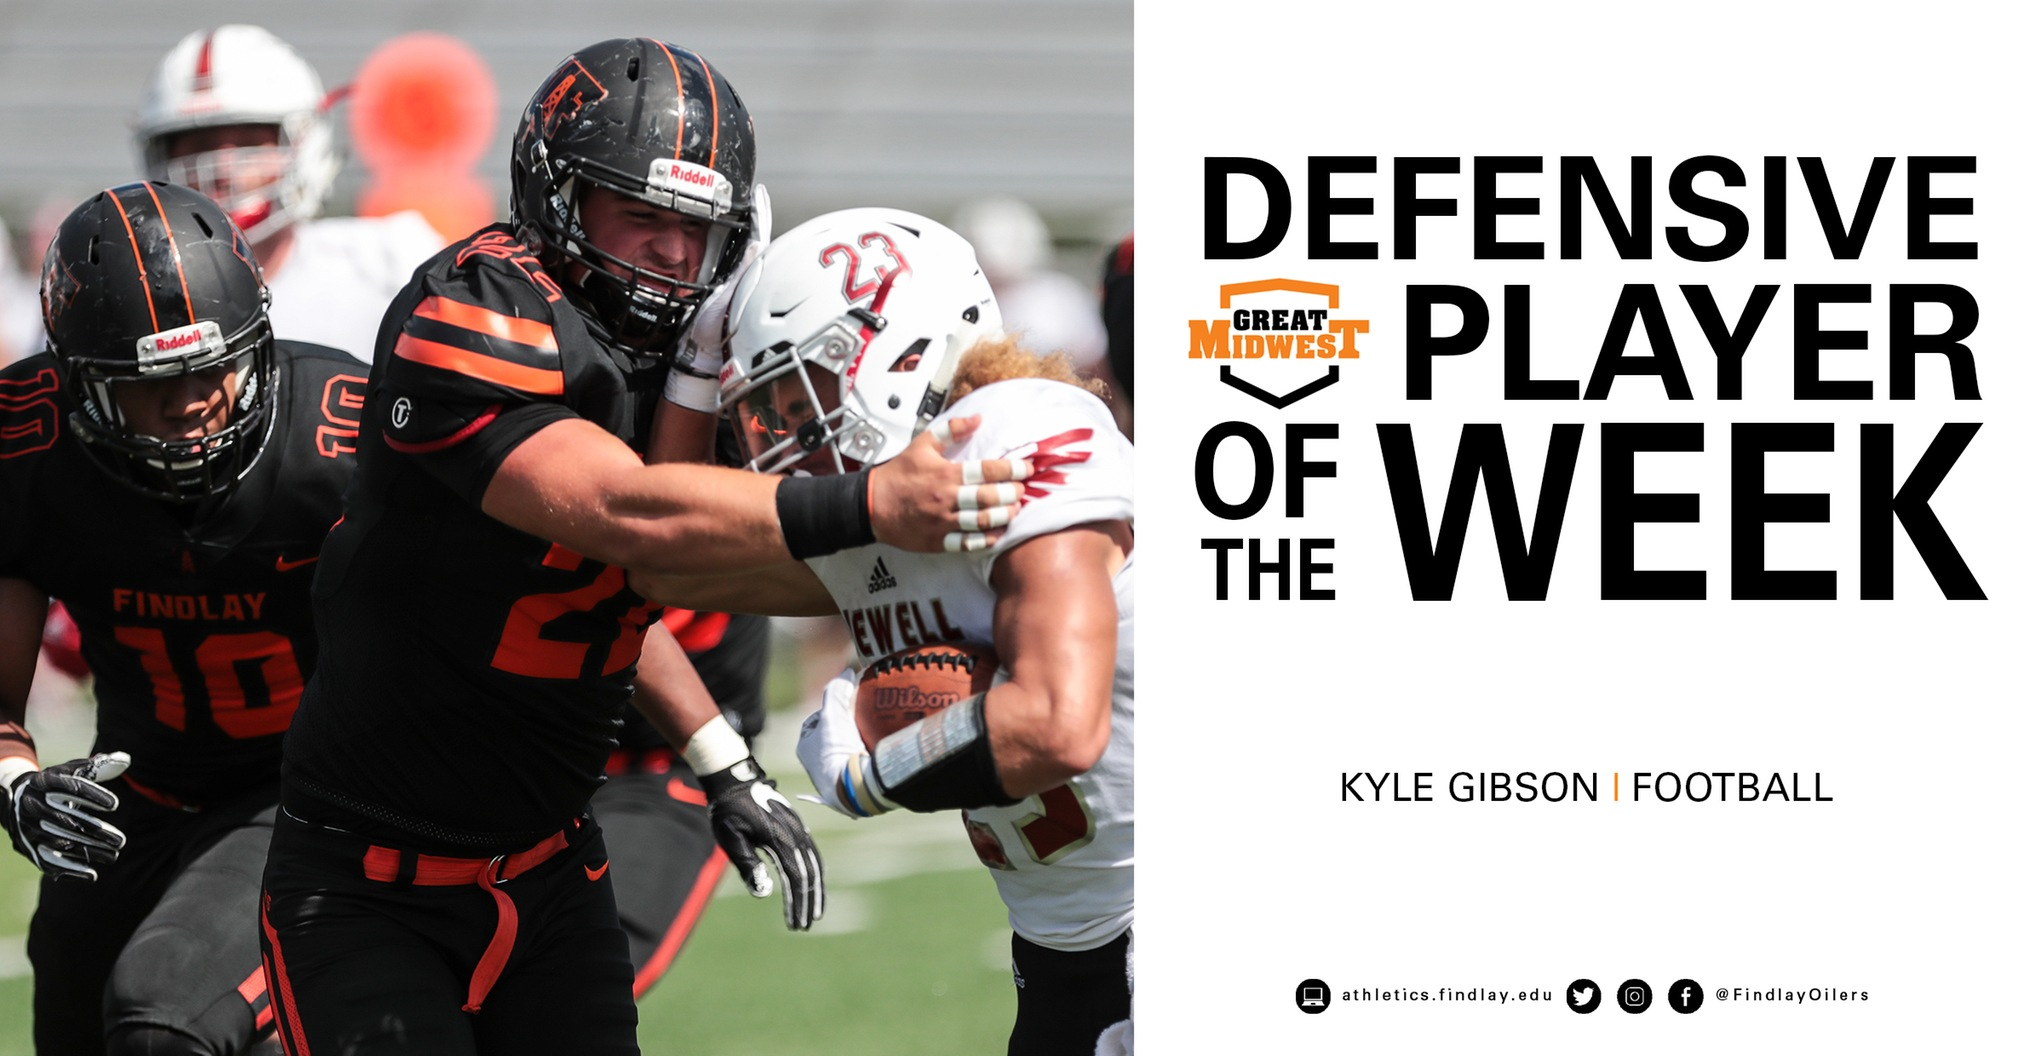 Kyle Gibson Named Defensive Player of the Week